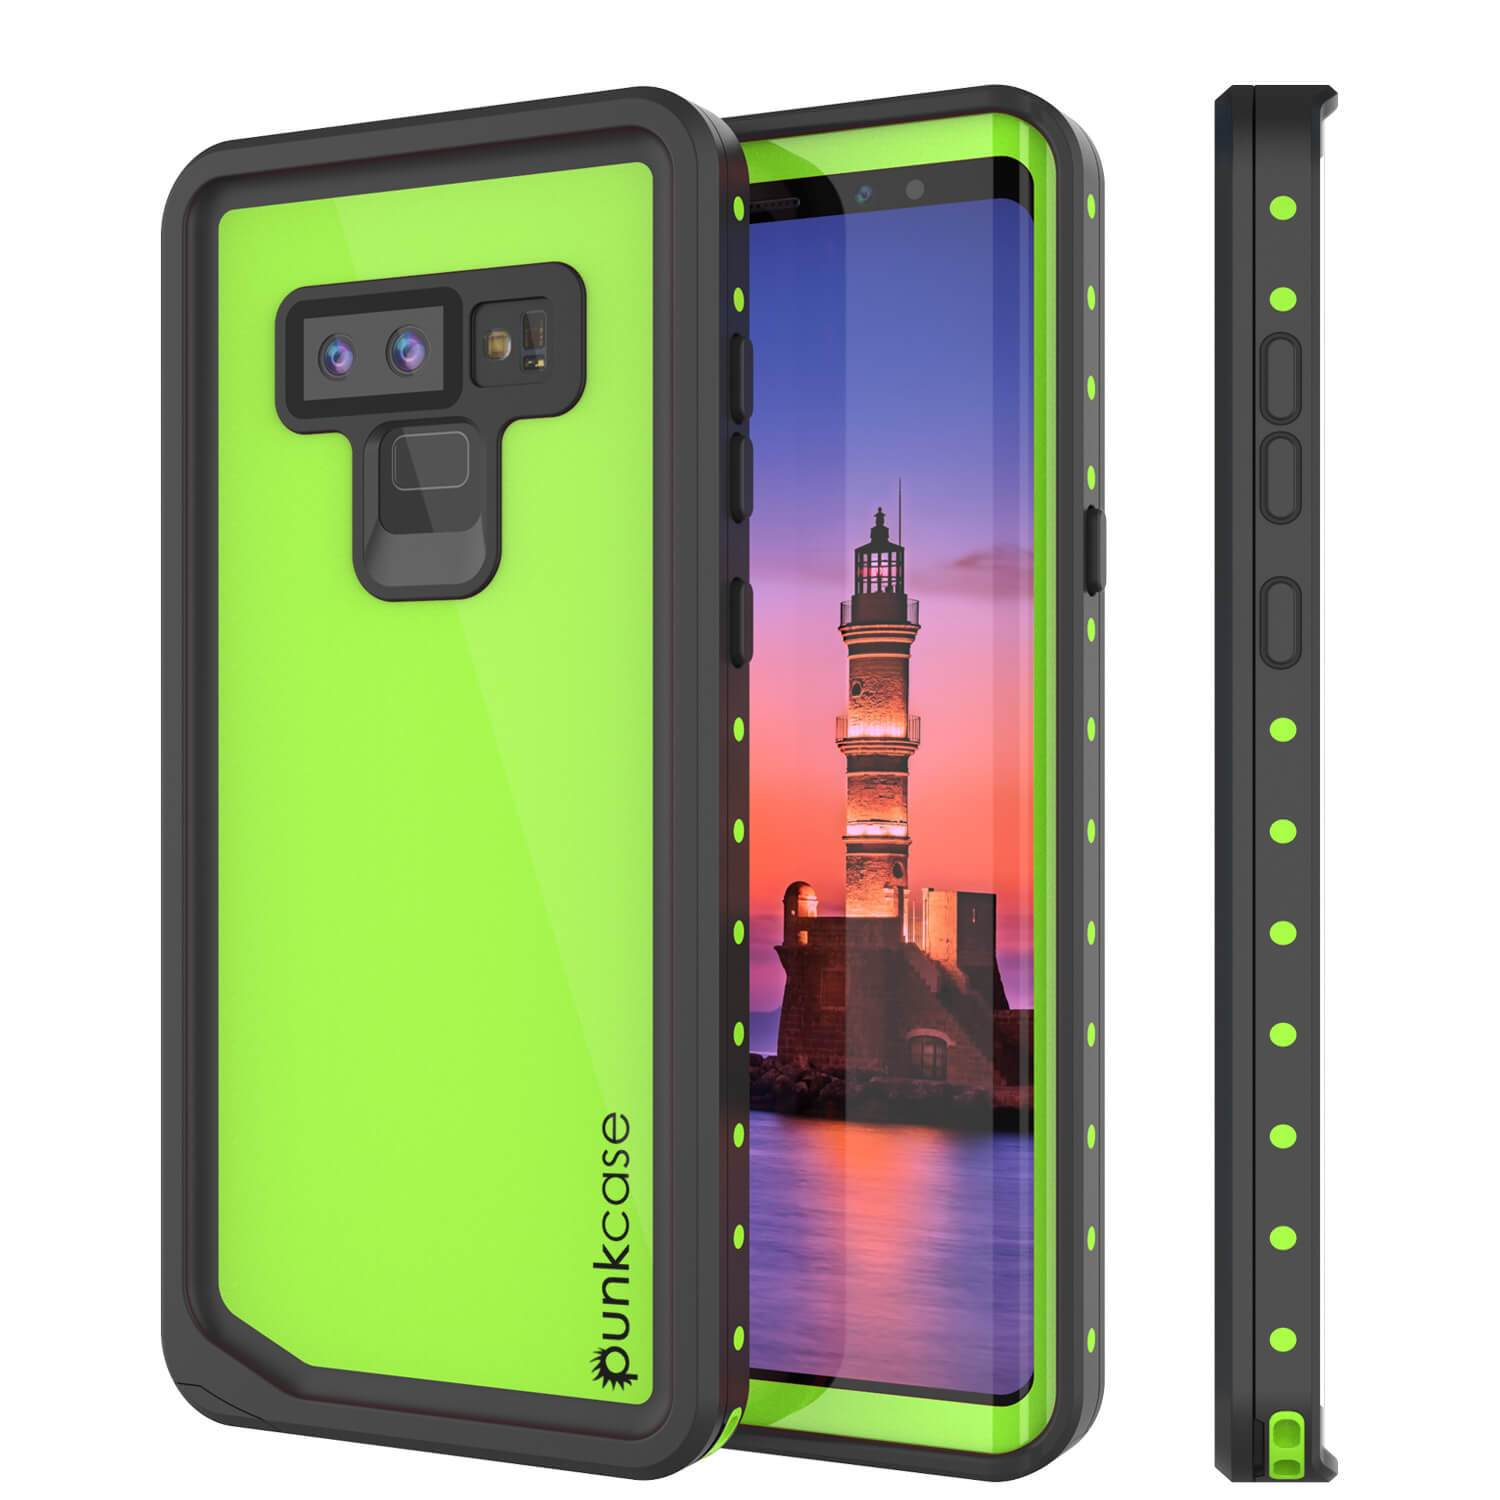 Galaxy Note 9 Waterproof PunkCase StudStar [Light Green] Thin 6.6ft